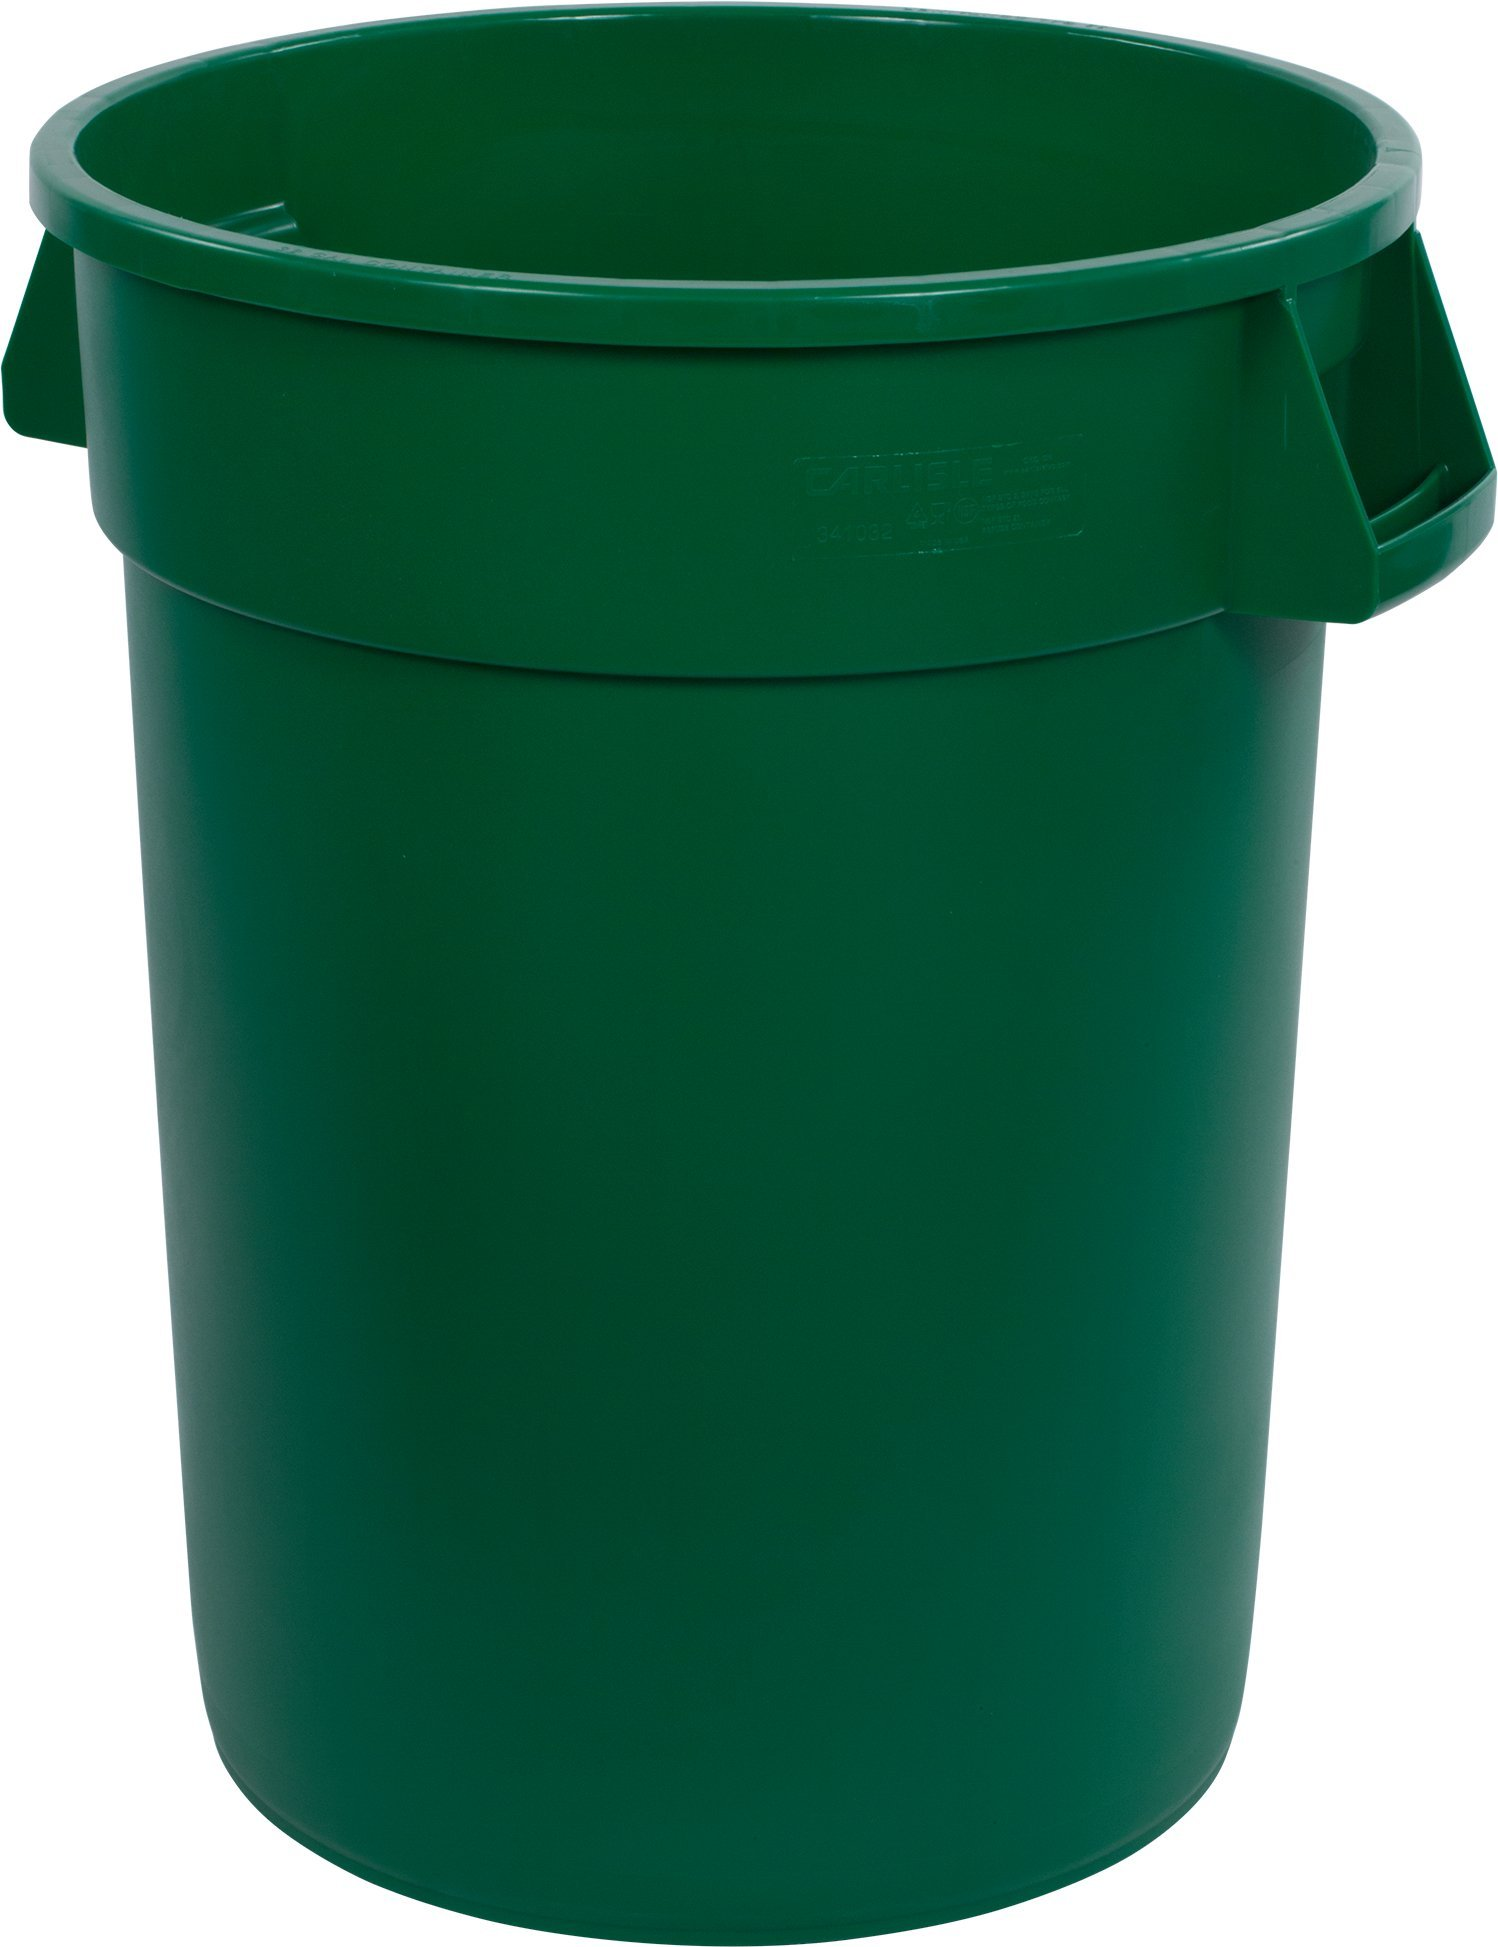 Carlisle 34103209 Bronco Round Waste Container Only, 32 Gallon, Green